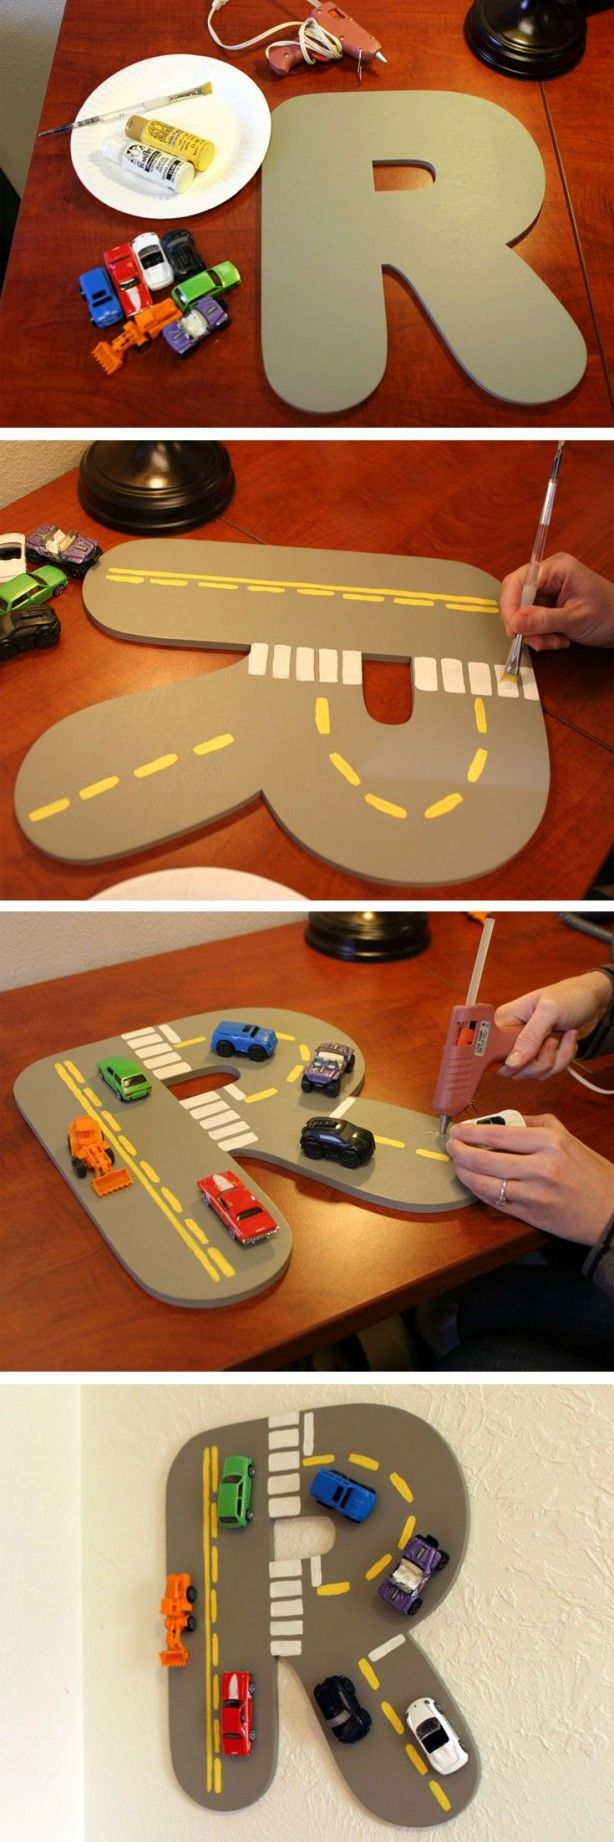 Boys car bedroom ideas - Top 28 Most Adorable Diy Wall Art Projects For Kids Room